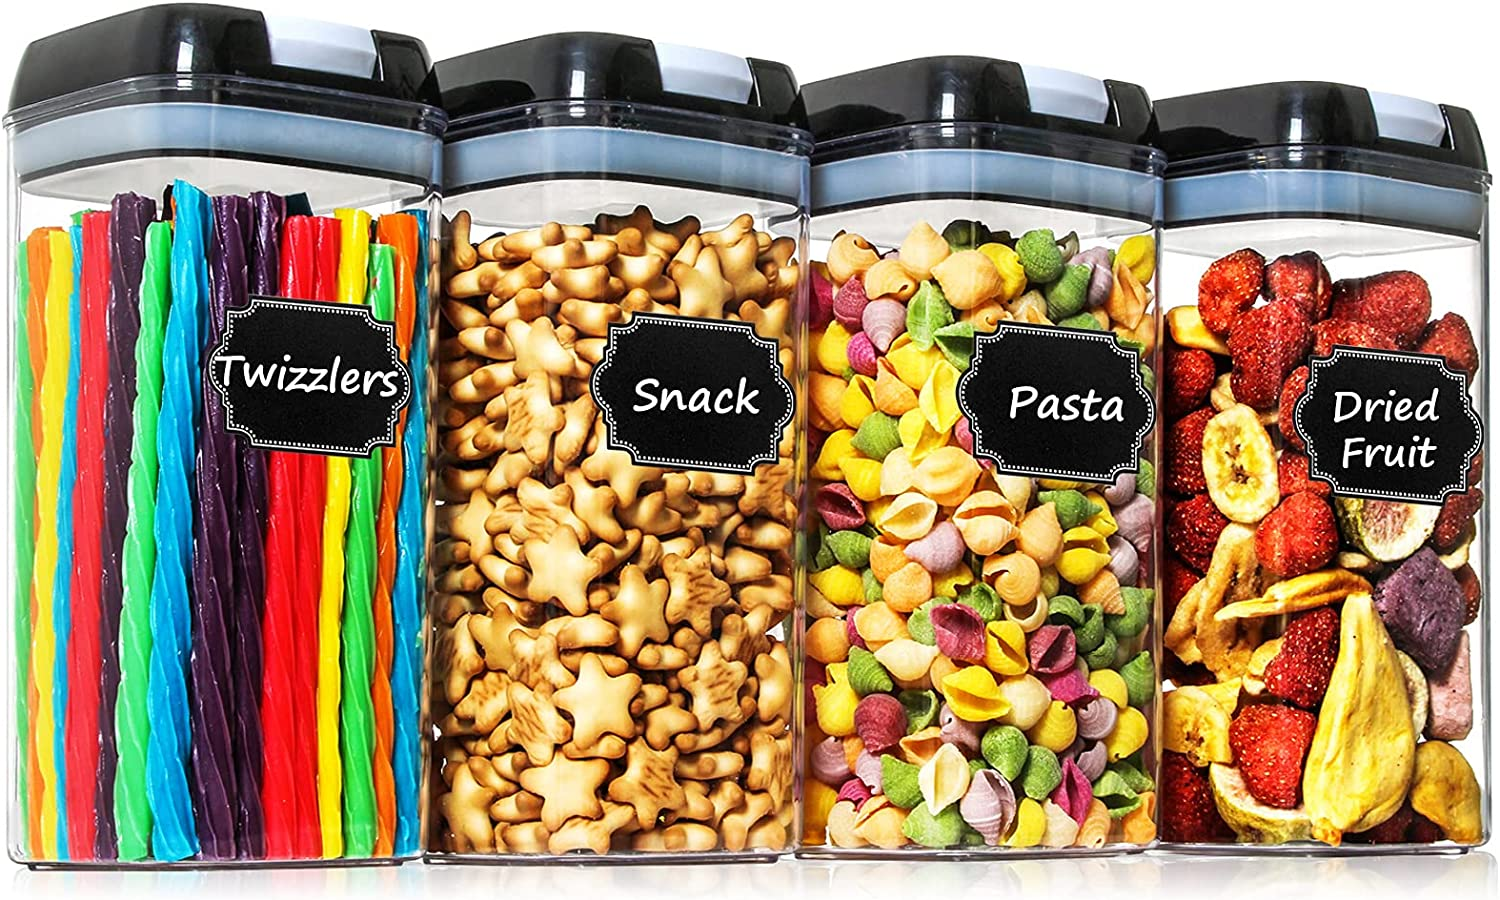 Airtight Food Storage Containers - Paincco 4 PC BPA Free Plastic Canisters 1.2L/1.1QT with Easy Lock Lids for Kitchen & Pantry Organization, Ideal for Cereal, Snack & Flour, with 20 Labels & Marker